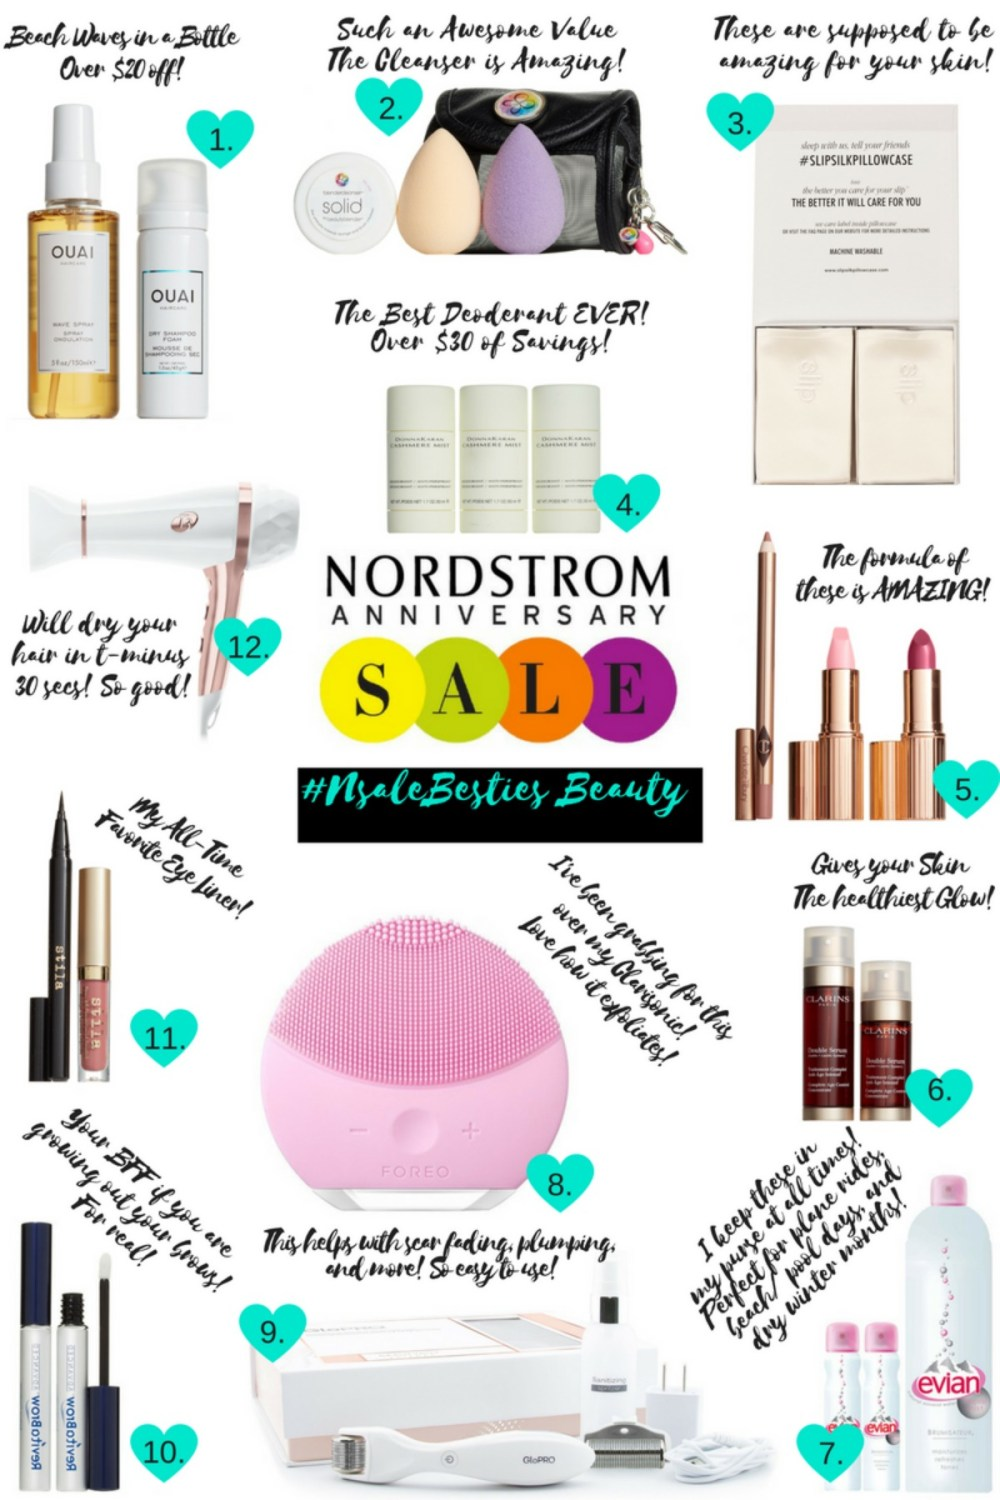 Not sure what to buy from the the Nordstrom Anniversary Sale beauty selection? The Glitter Gospel has you covered with a roundup of the Best Beauty buys from the Nordstrom Anniversary Sale 2017.